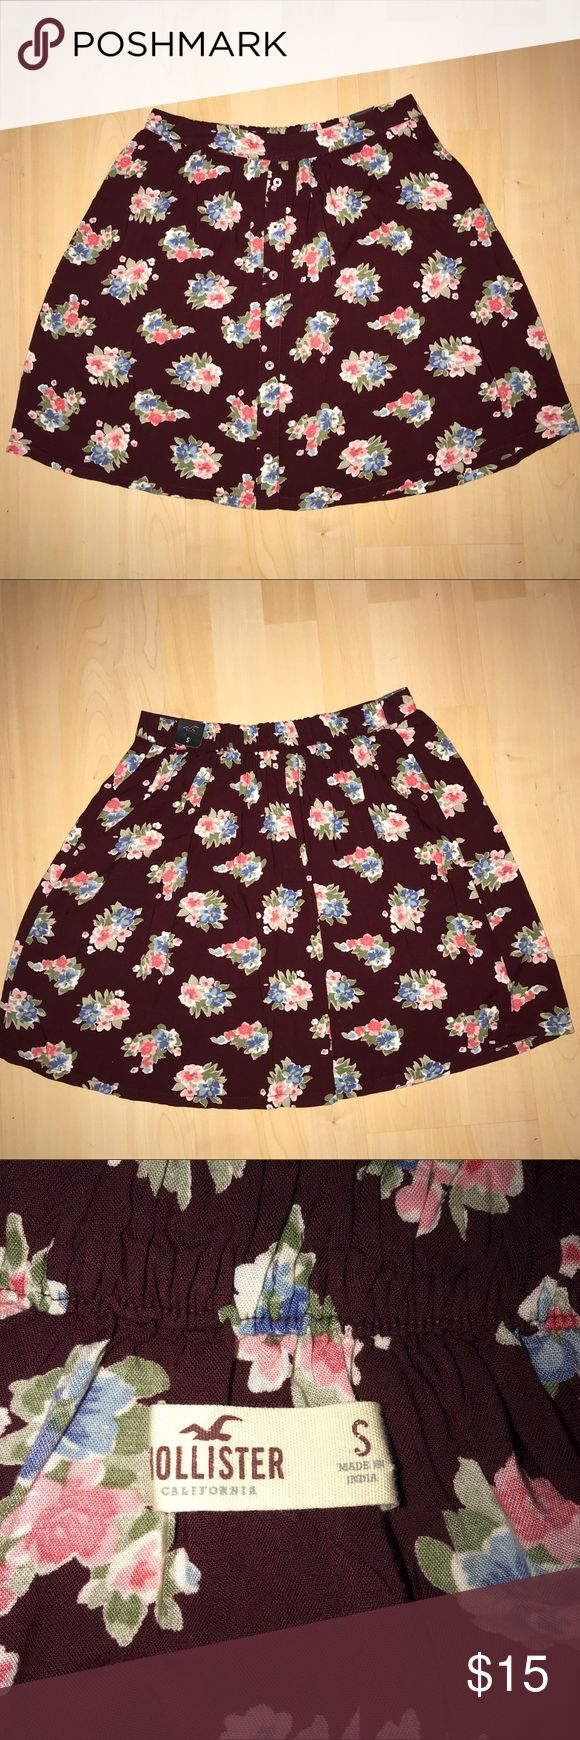 Floral Hollister skirt Size small and never worn Hollister Skirts Mini